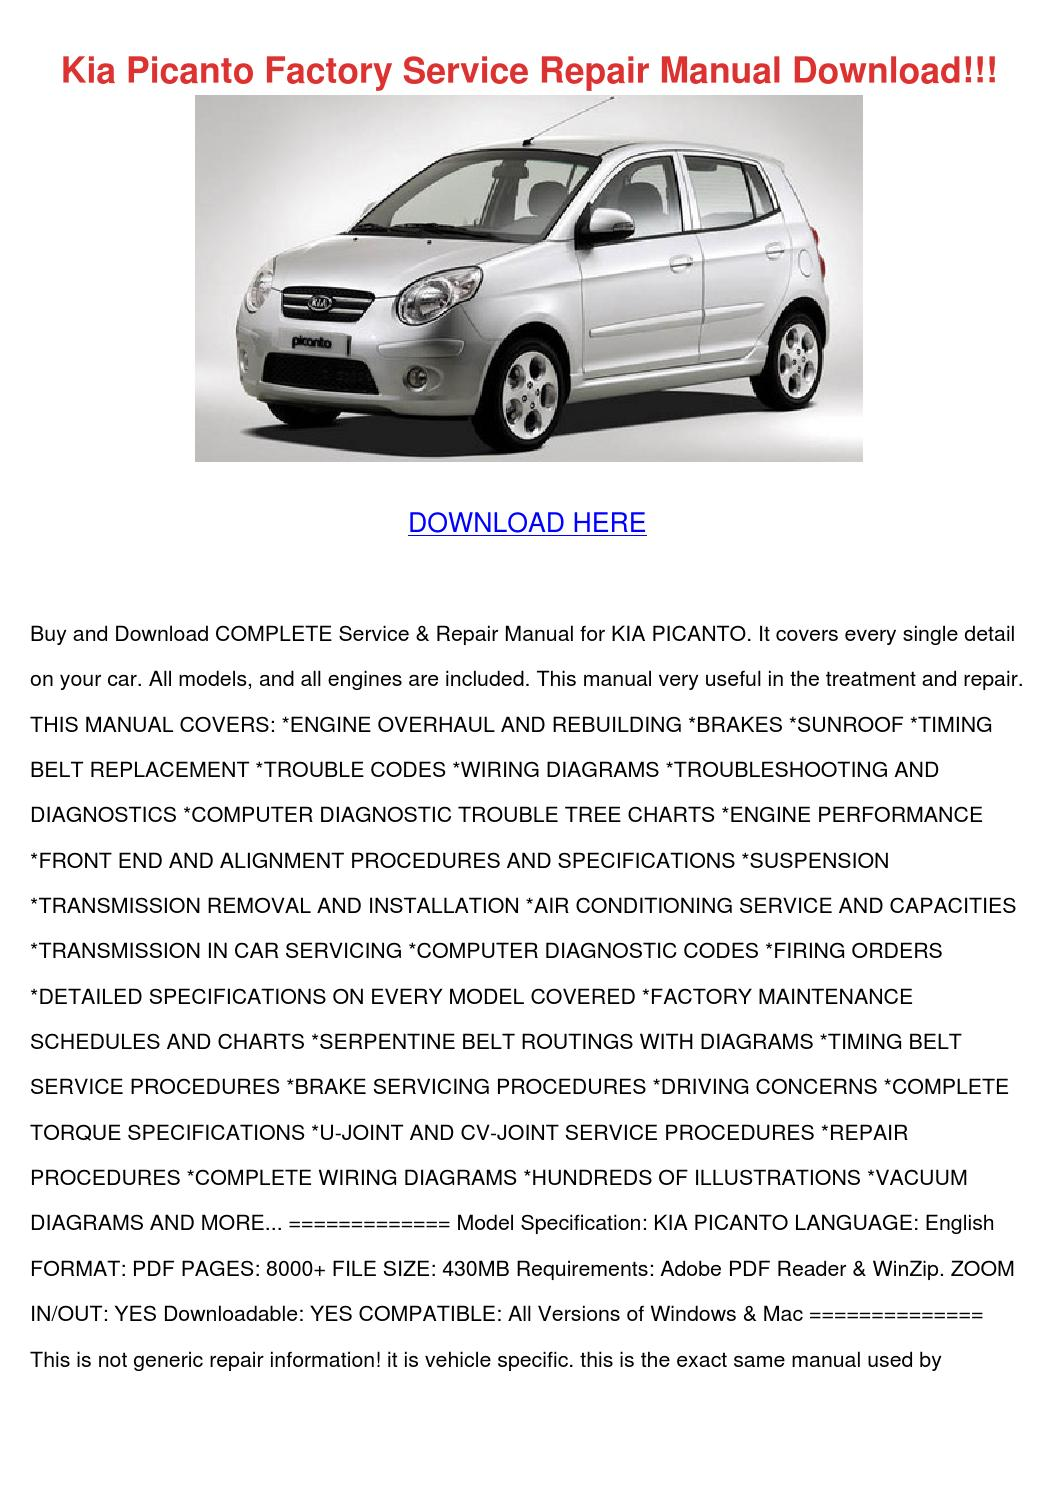 page_1 kia picanto factory service repair manual download by marek kia picanto wiring diagram pdf at suagrazia.org